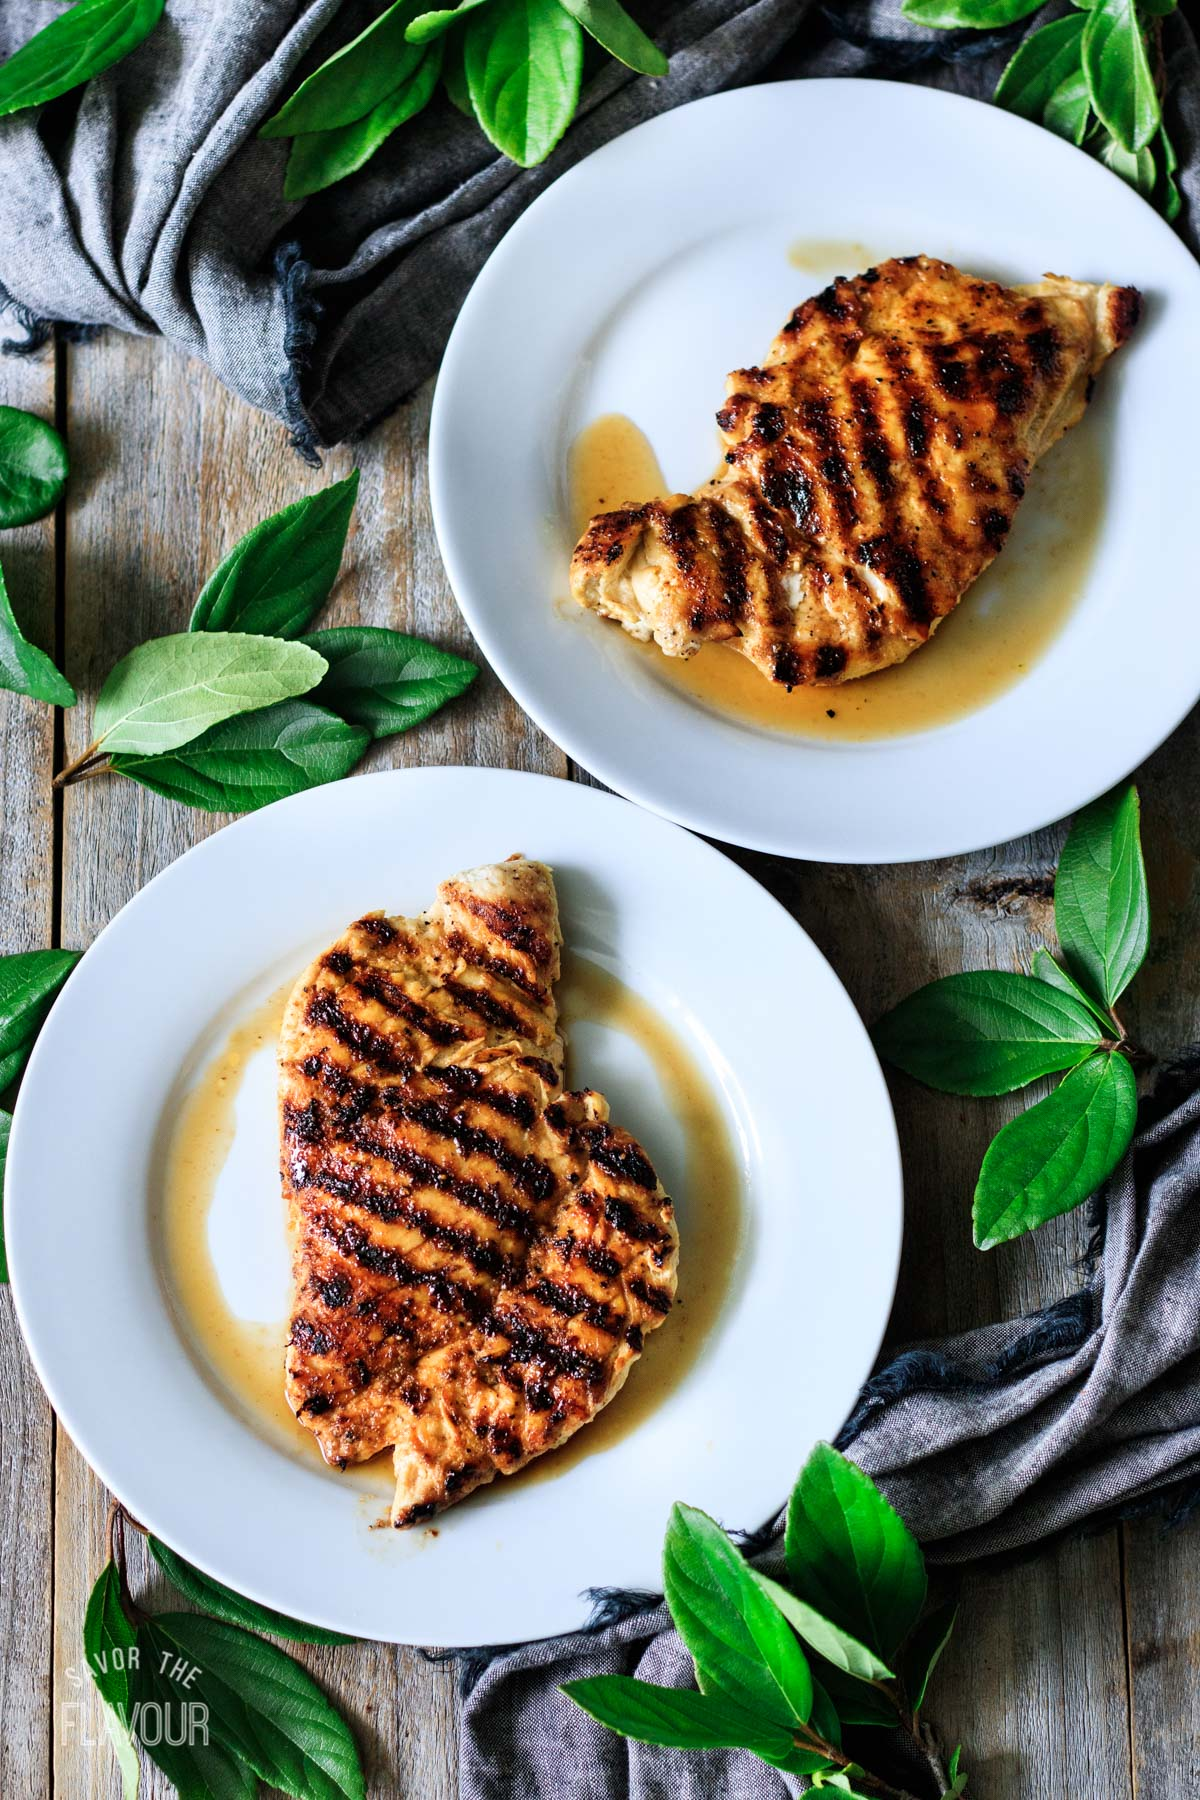 grilled chicken breasts on white plates